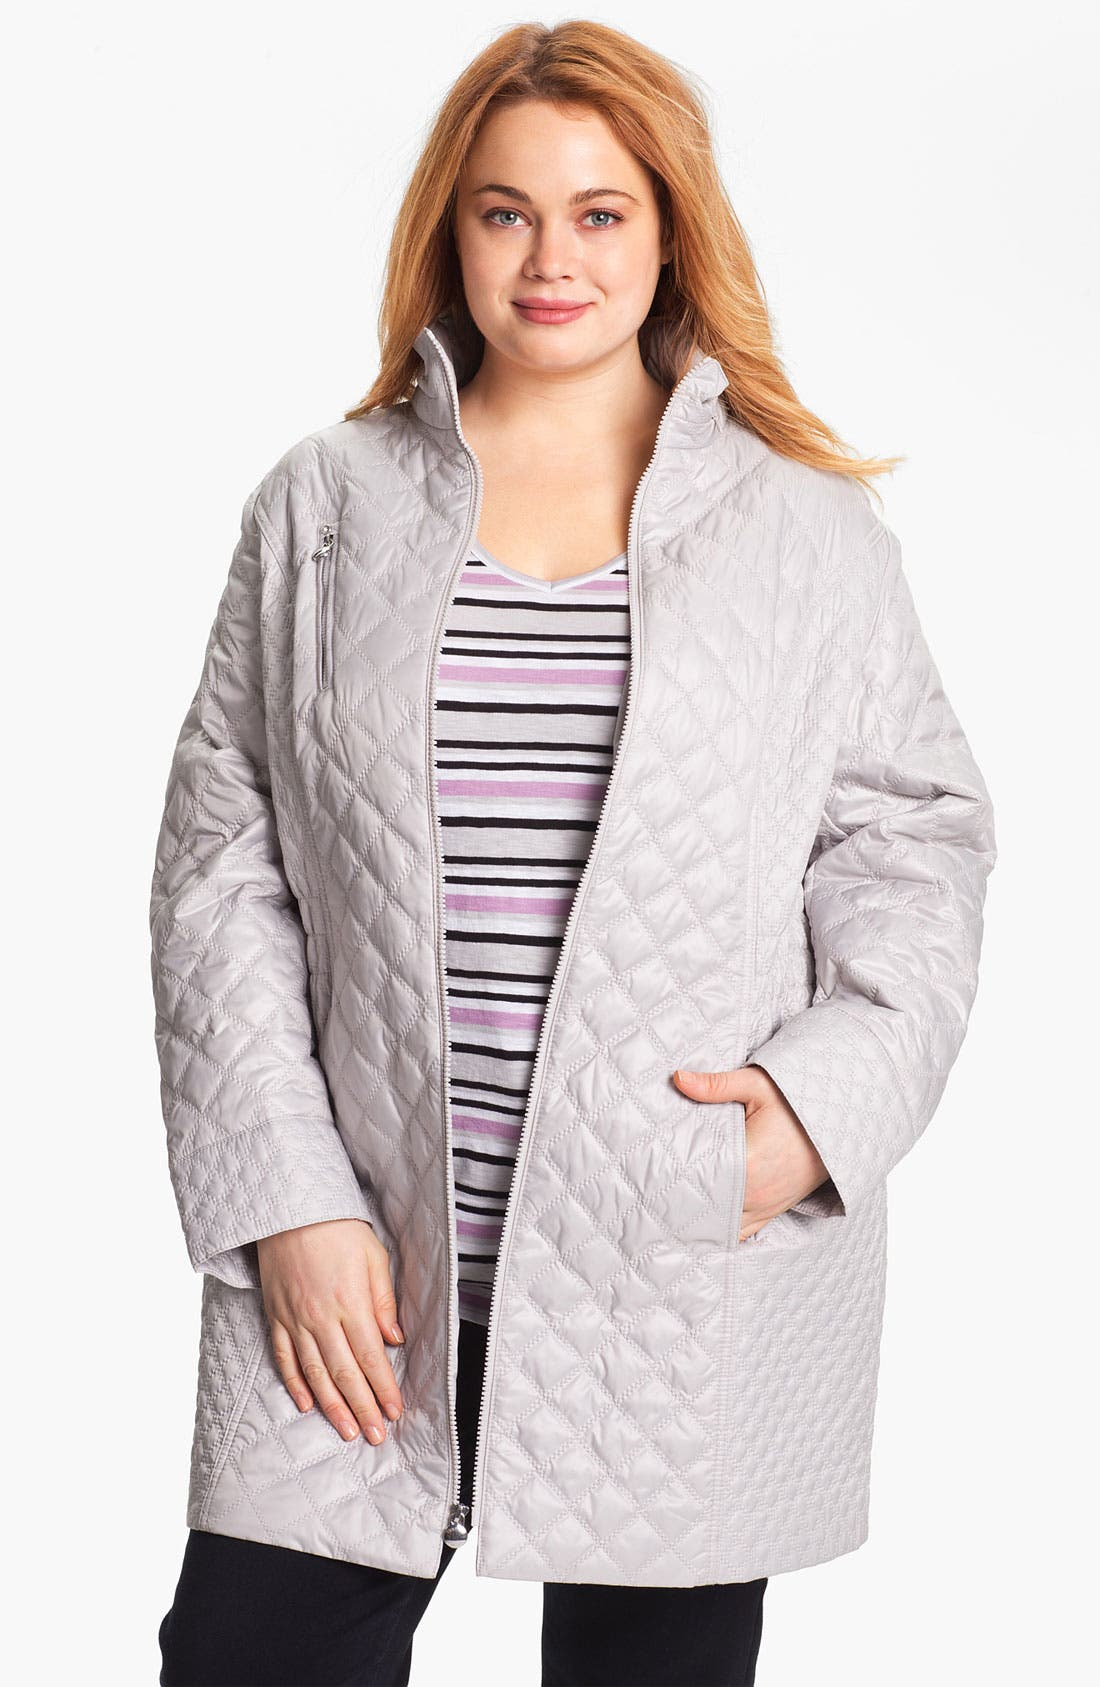 Alternate Image 1 Selected - Laundry by Shelli Segal Packable Quilted Coat (Plus Size)